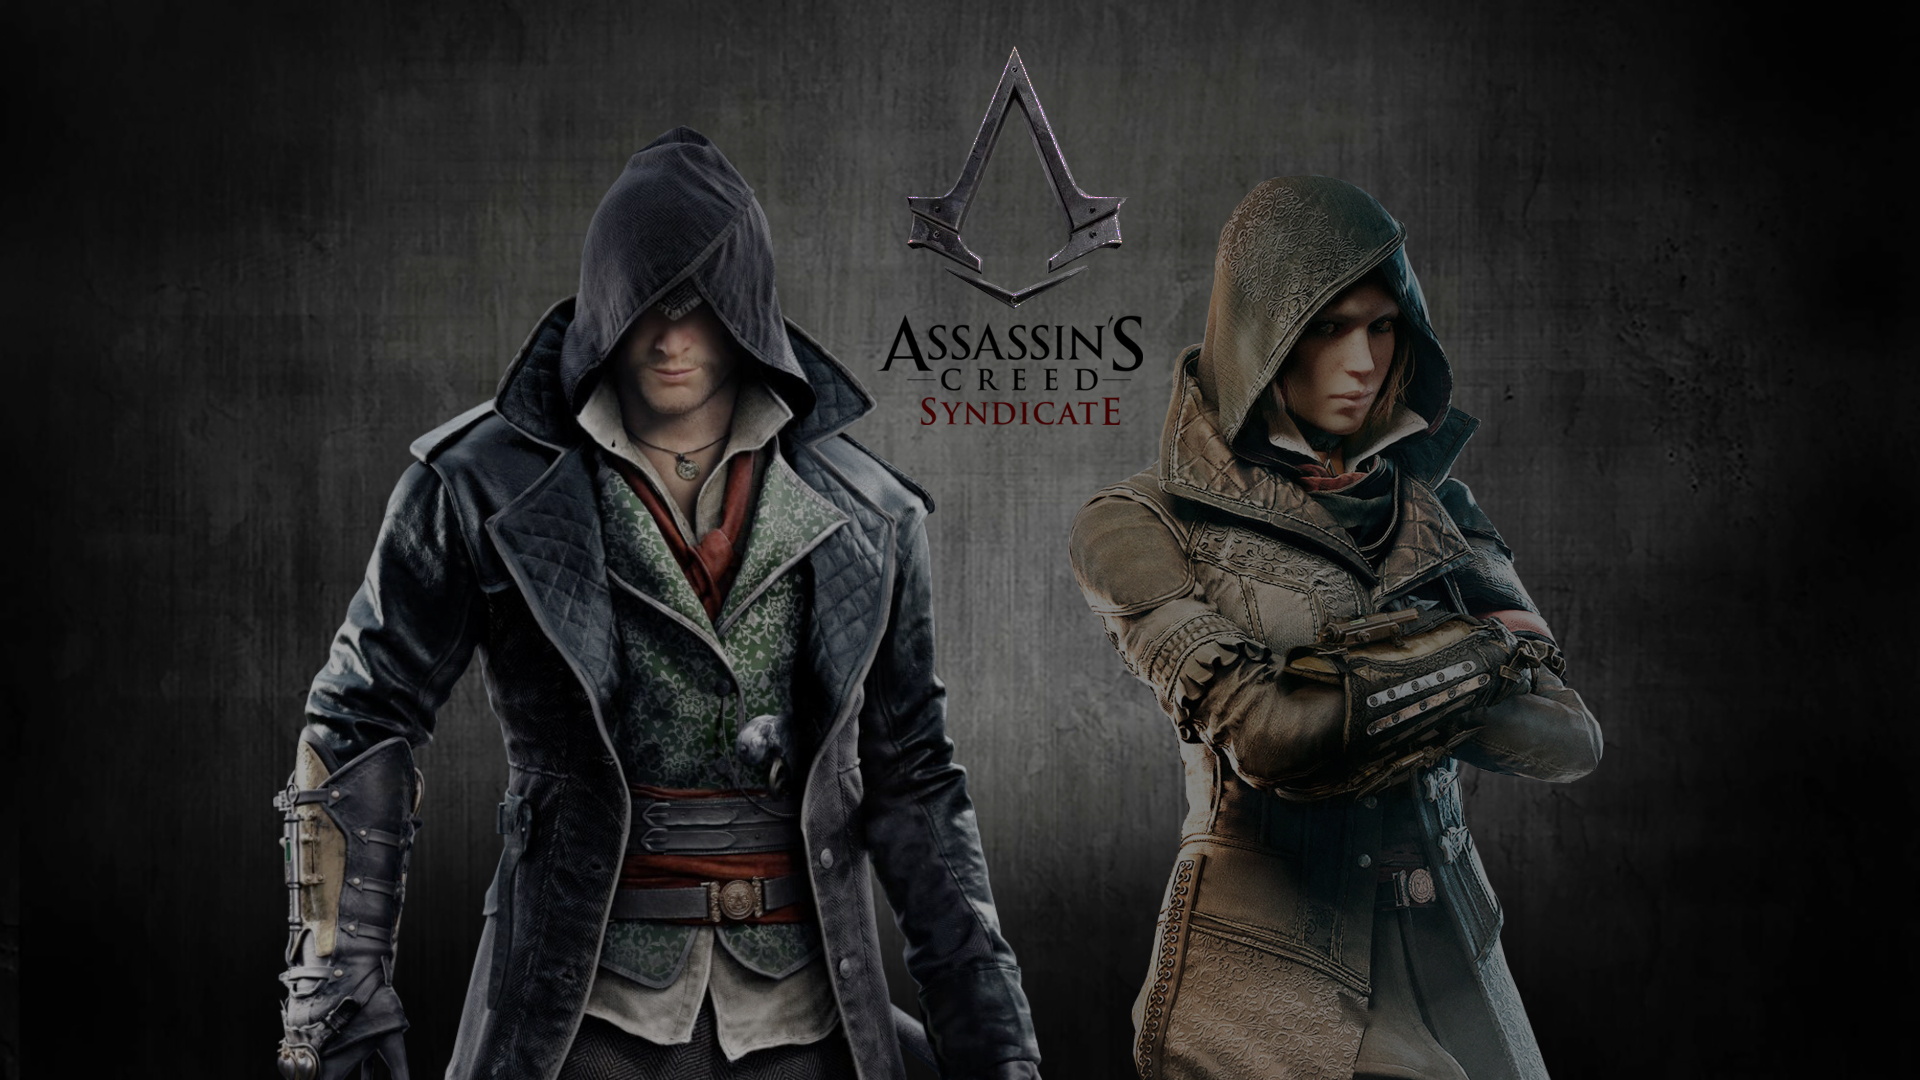 Assassin S Creed Syndicate Wallpaper By Drpokelover On Deviantart